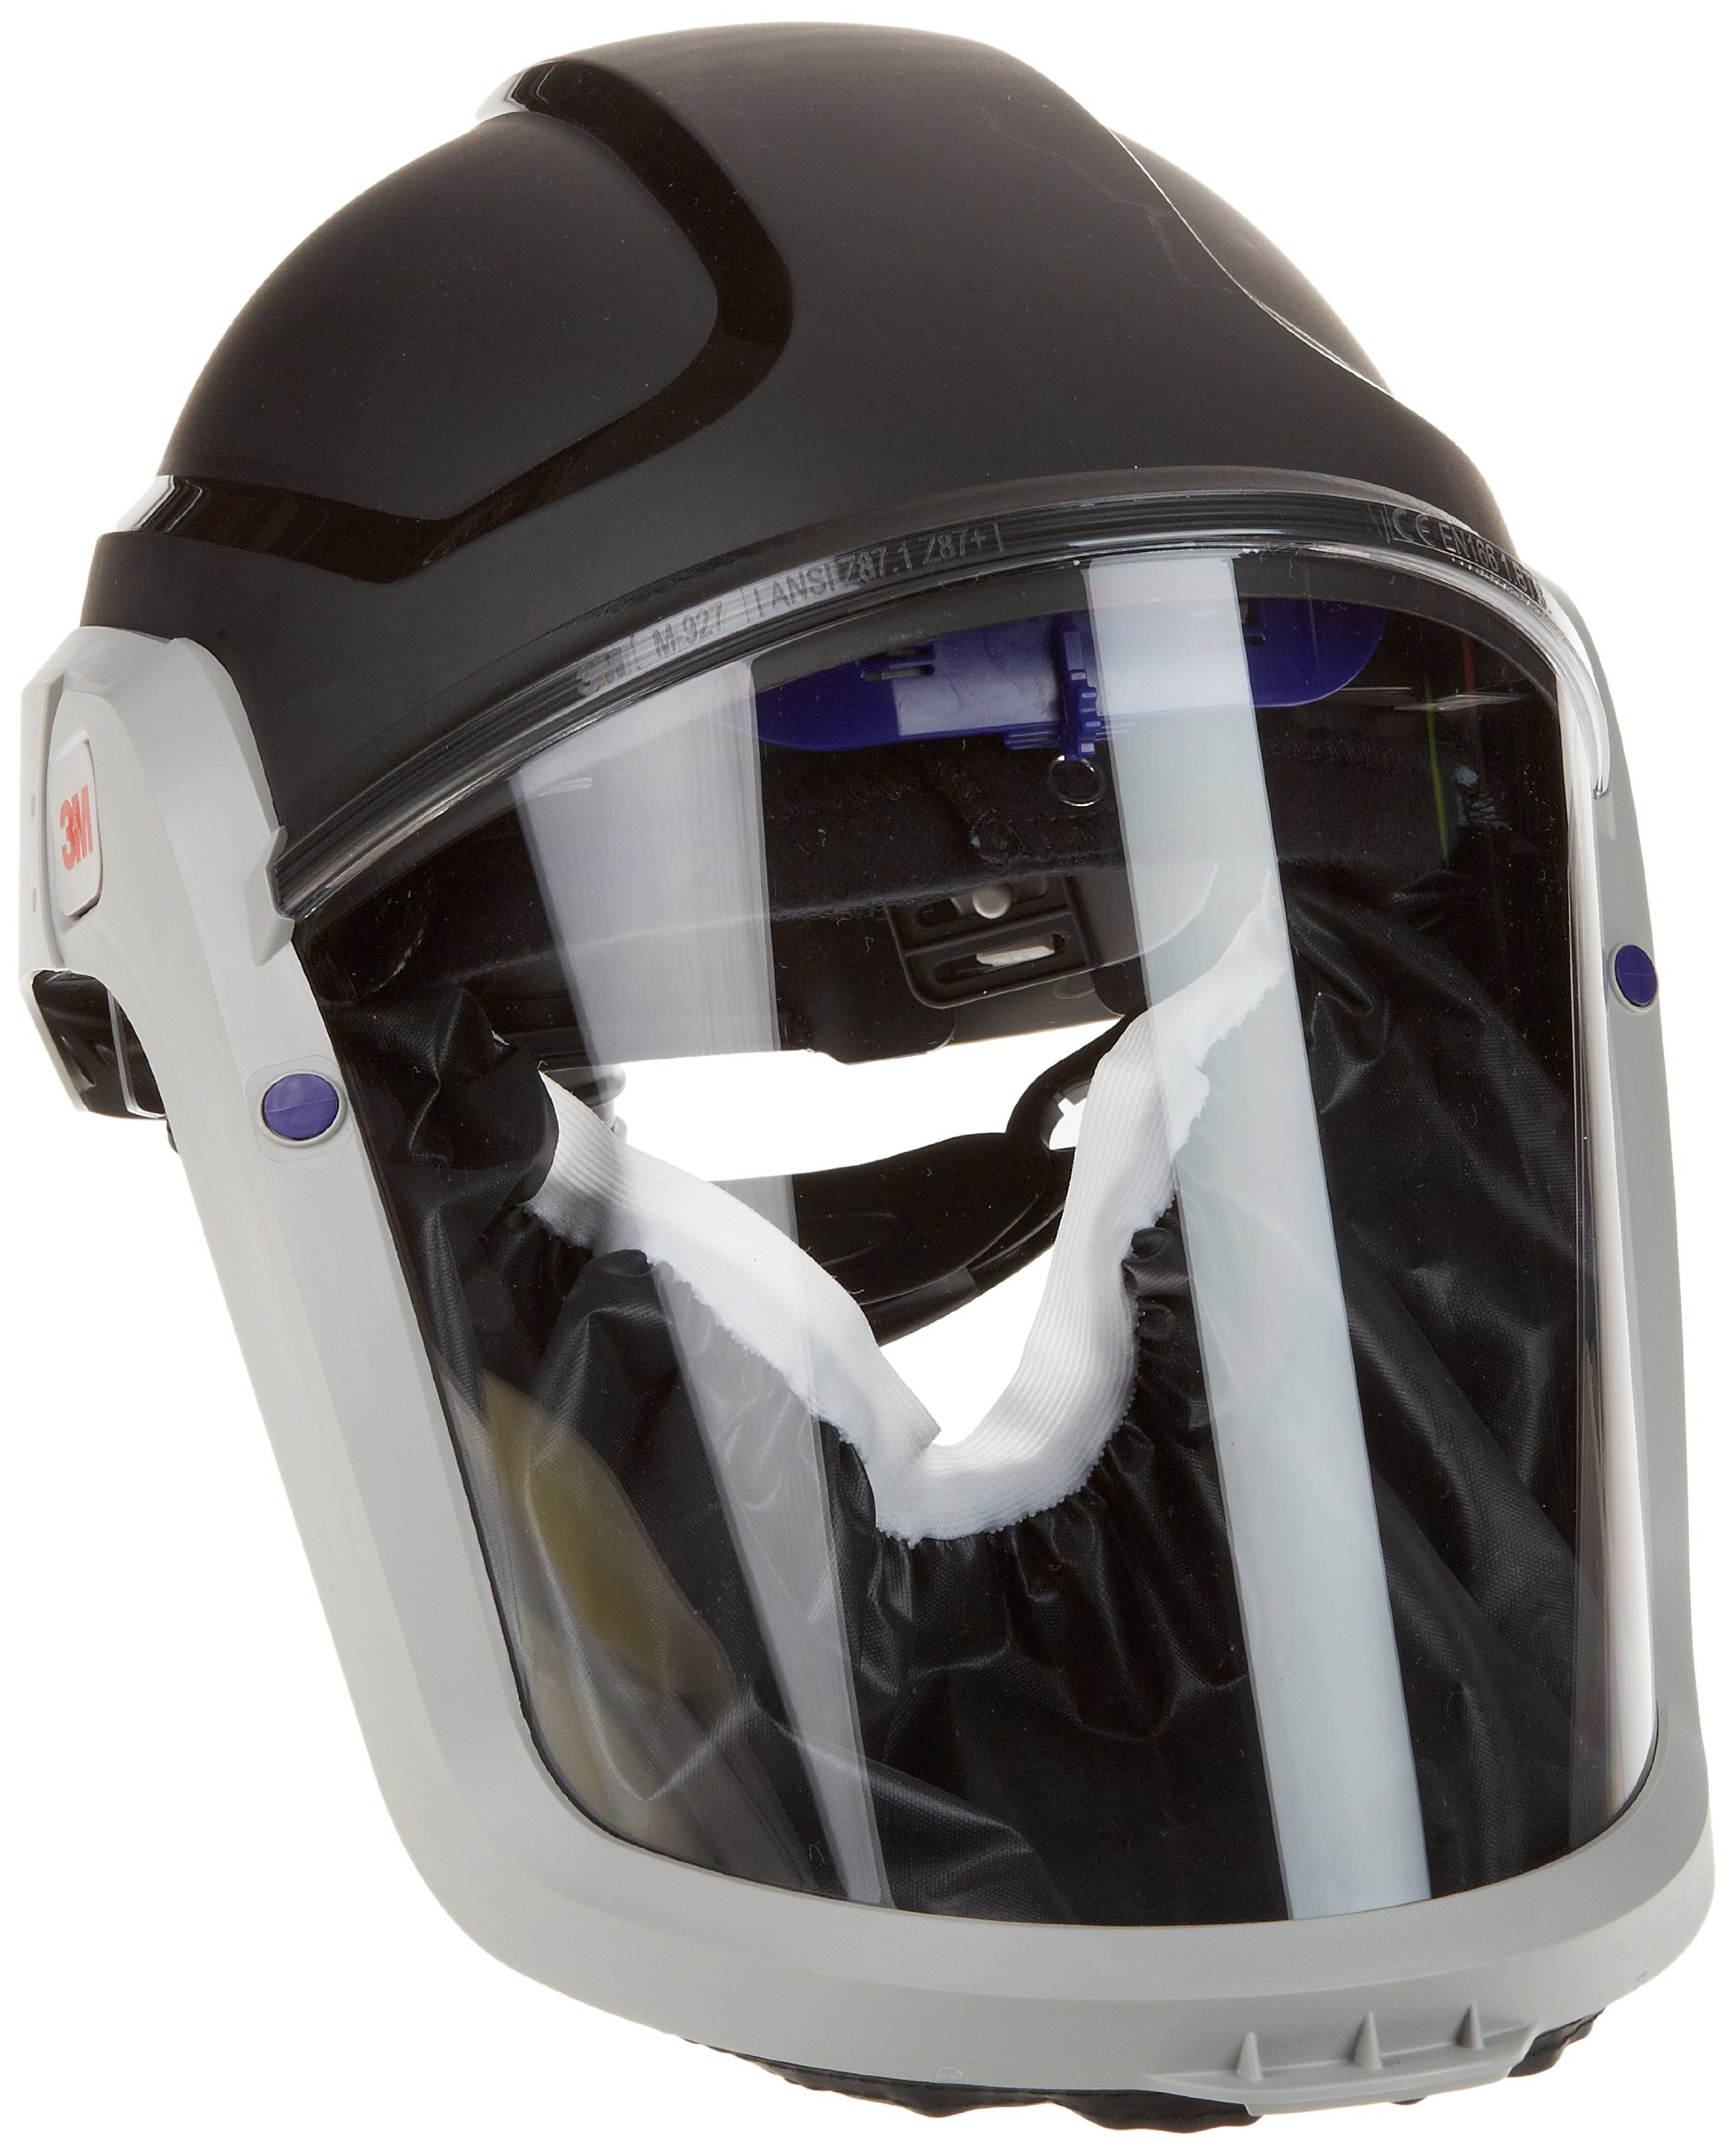 3M M-300 Series Versaflo Respiratory Hardhat Assembly M-307, with Premium Visor and Faceseal by 3M Personal Protective Equipment